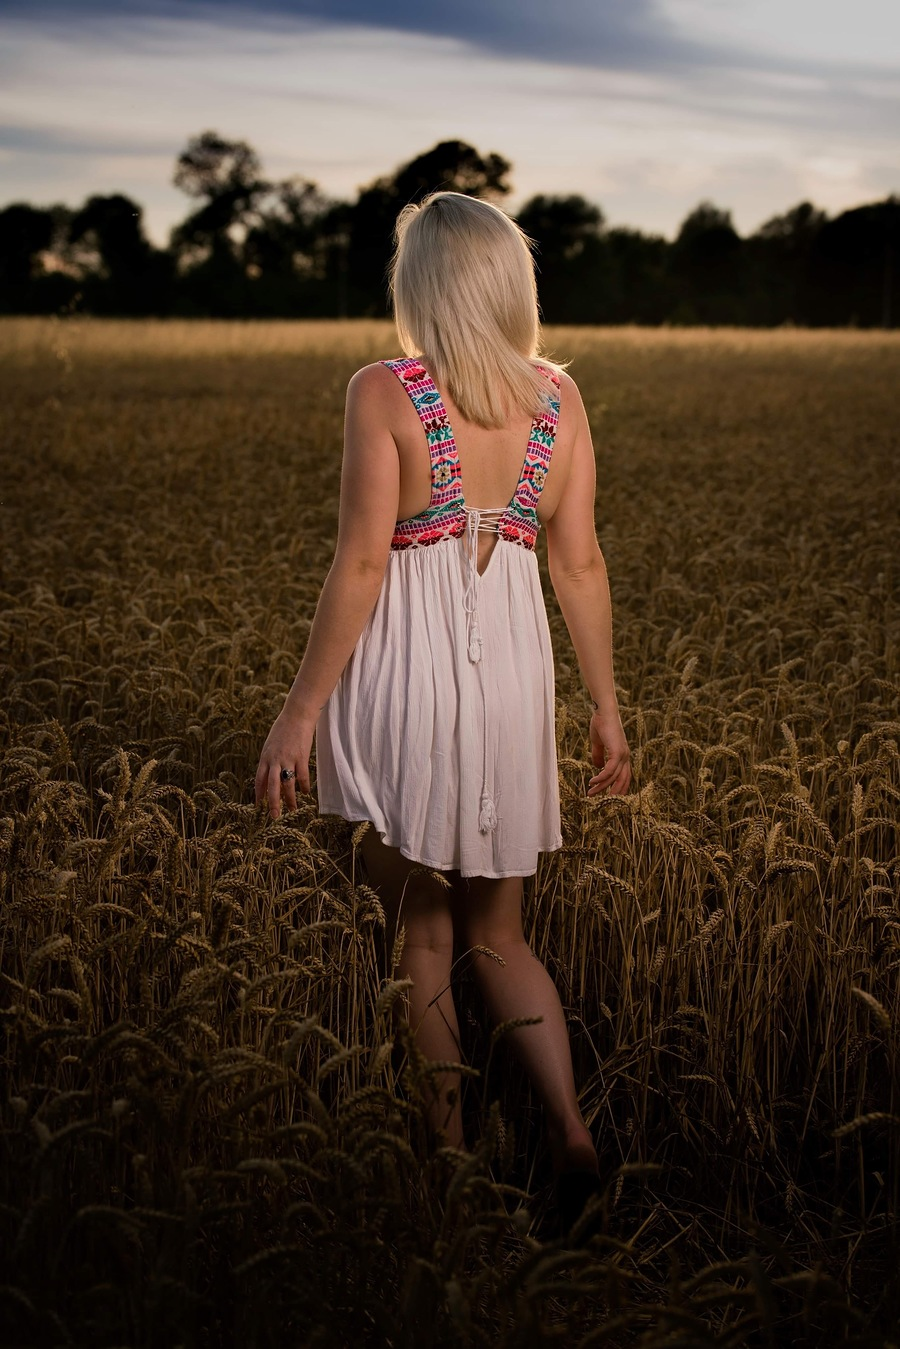 Walking through the field.... thinking of breakfast :) / Photography by Dave Lynes, Model PJ Elise / Uploaded 25th July 2019 @ 10:44 AM